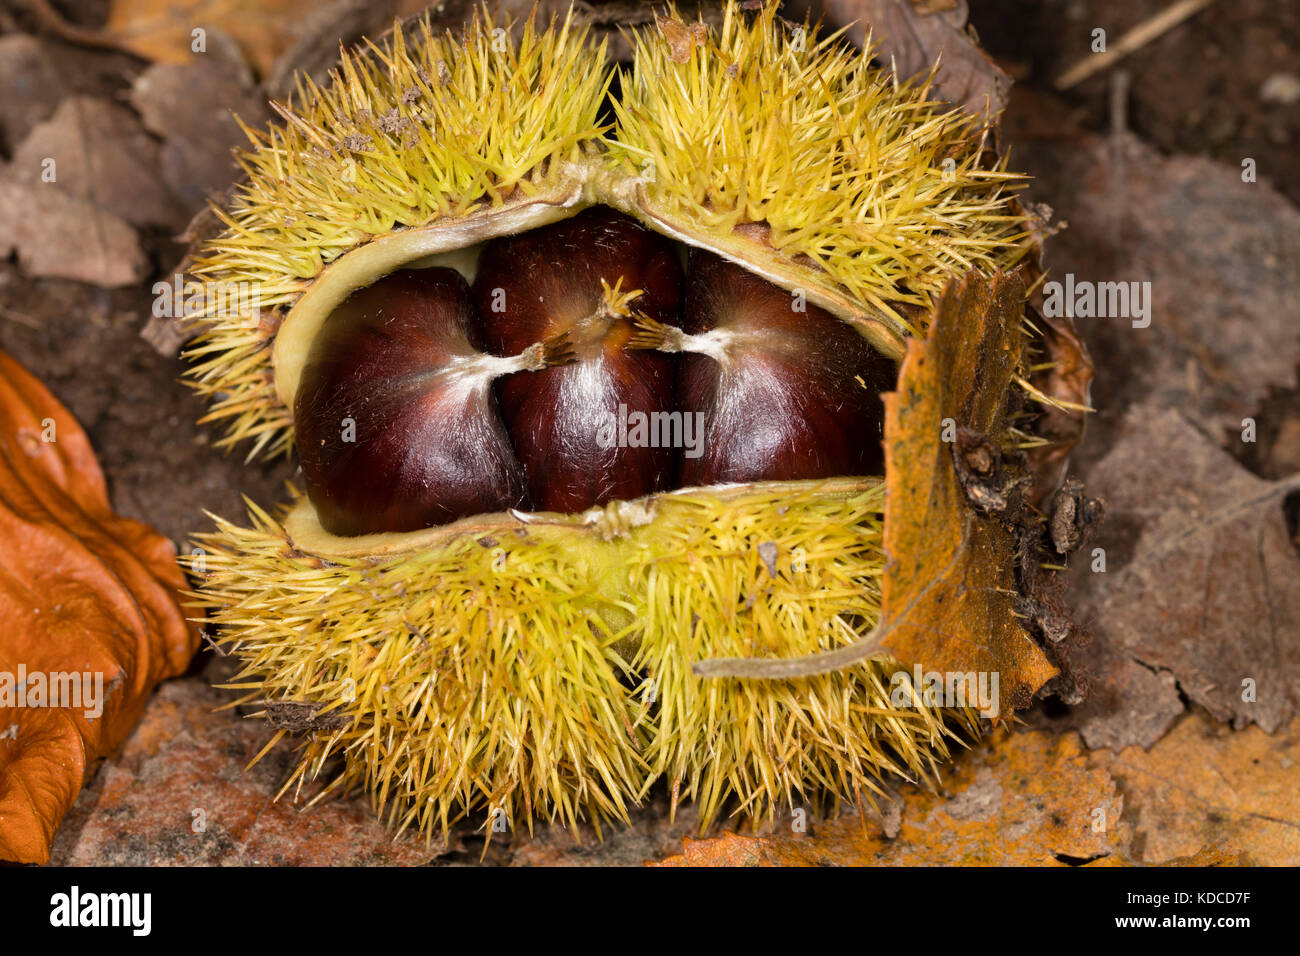 Freshly fallen spiny cupule of Castanea sativa case with three edible sweet chestnut nuts inside - Stock Image